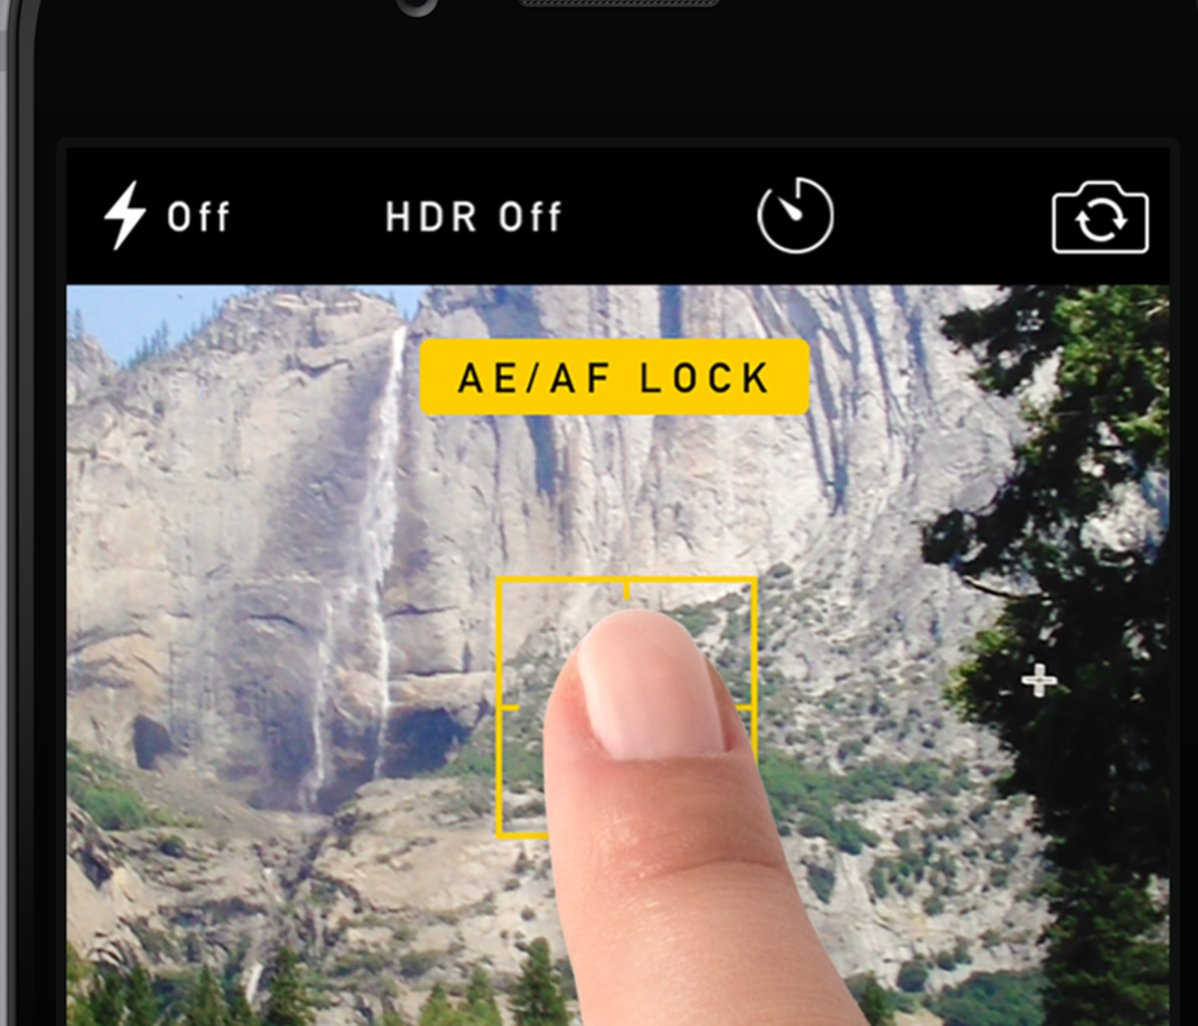 """Catherine Aird on Twitter: """"🤓 #NINJATIP - AE/AF Lock is an iPhone feature  that allows you to lock the focus and exposure when taking a photo⇢  https://t.co/9GsZ9uGnEP… https://t.co/gWfPsgKtpl"""""""